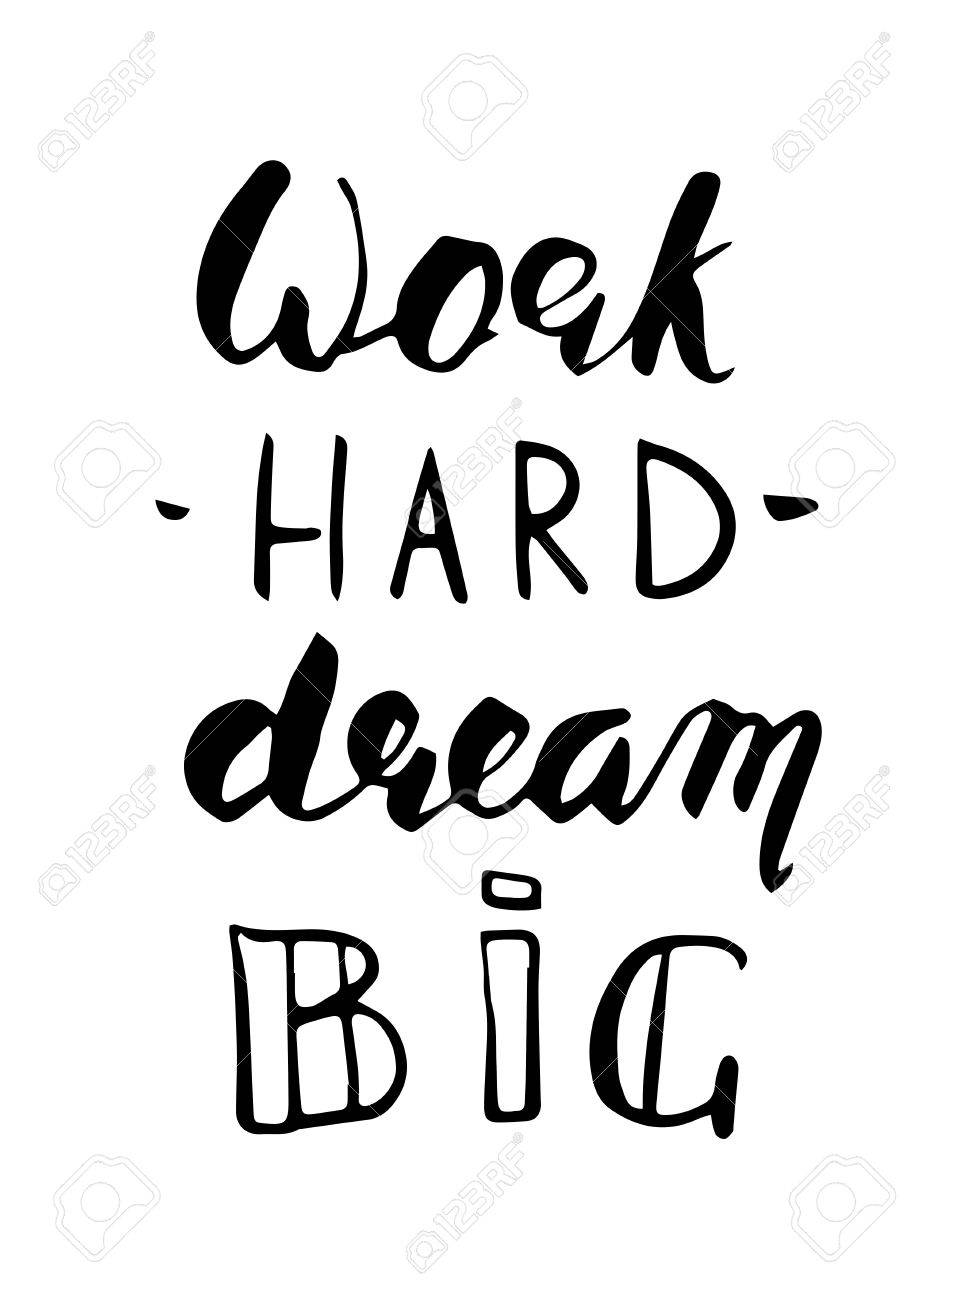 Work Hard Dream Big Lettering Motivational Quote Isolated Black